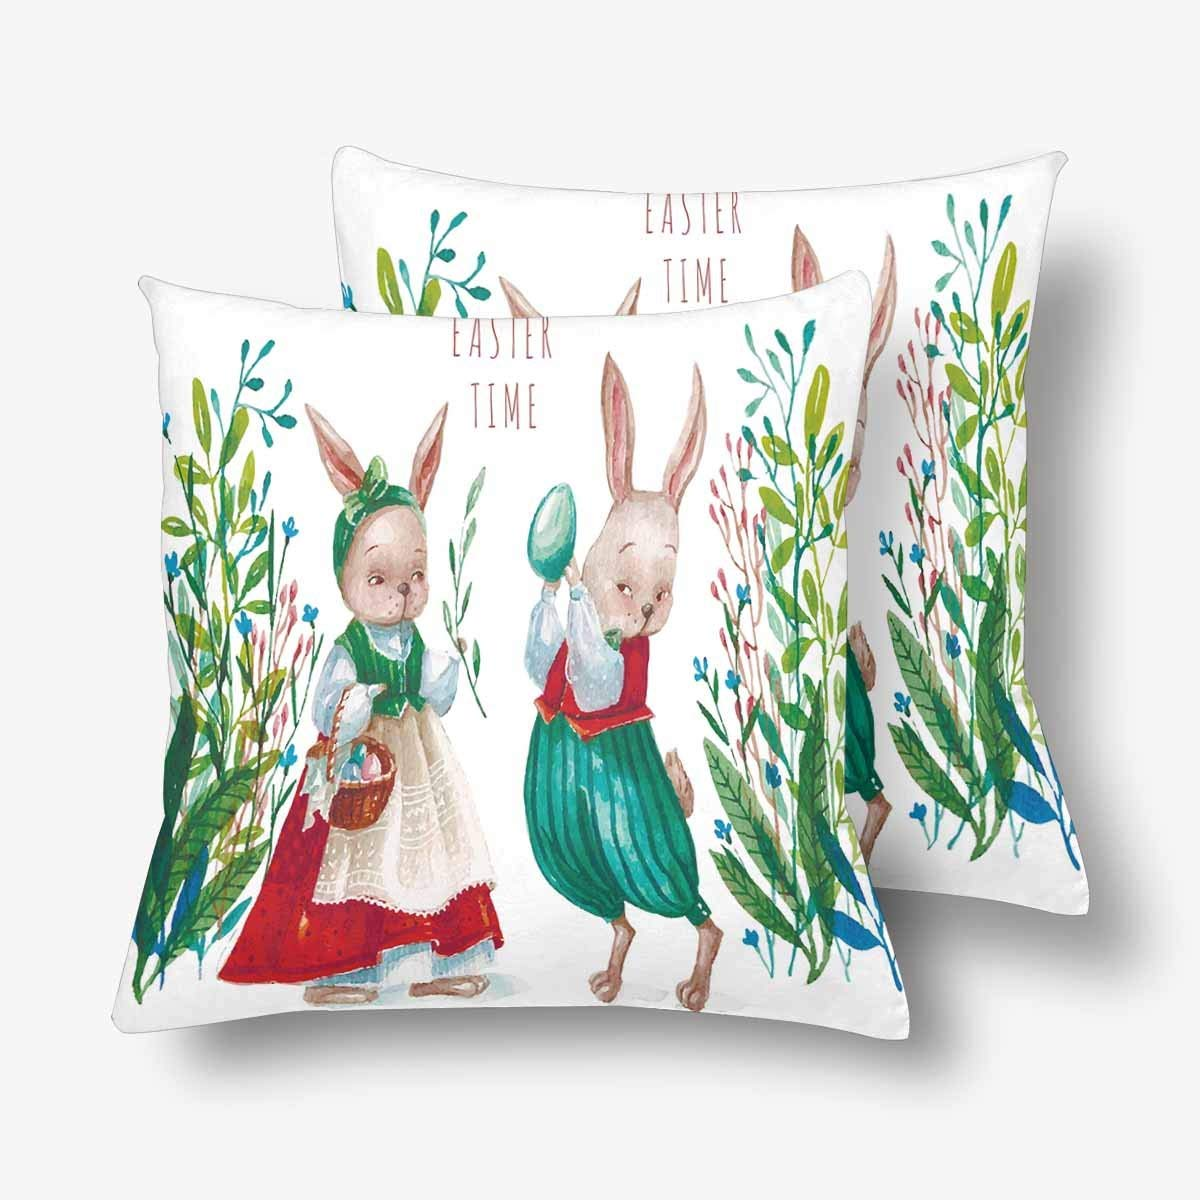 GCKG Easter Bunny Easter Egg Watercolor Animal Pillowcase Throw Pillow Covers 18x18 inches Set of 2 - image 3 of 3